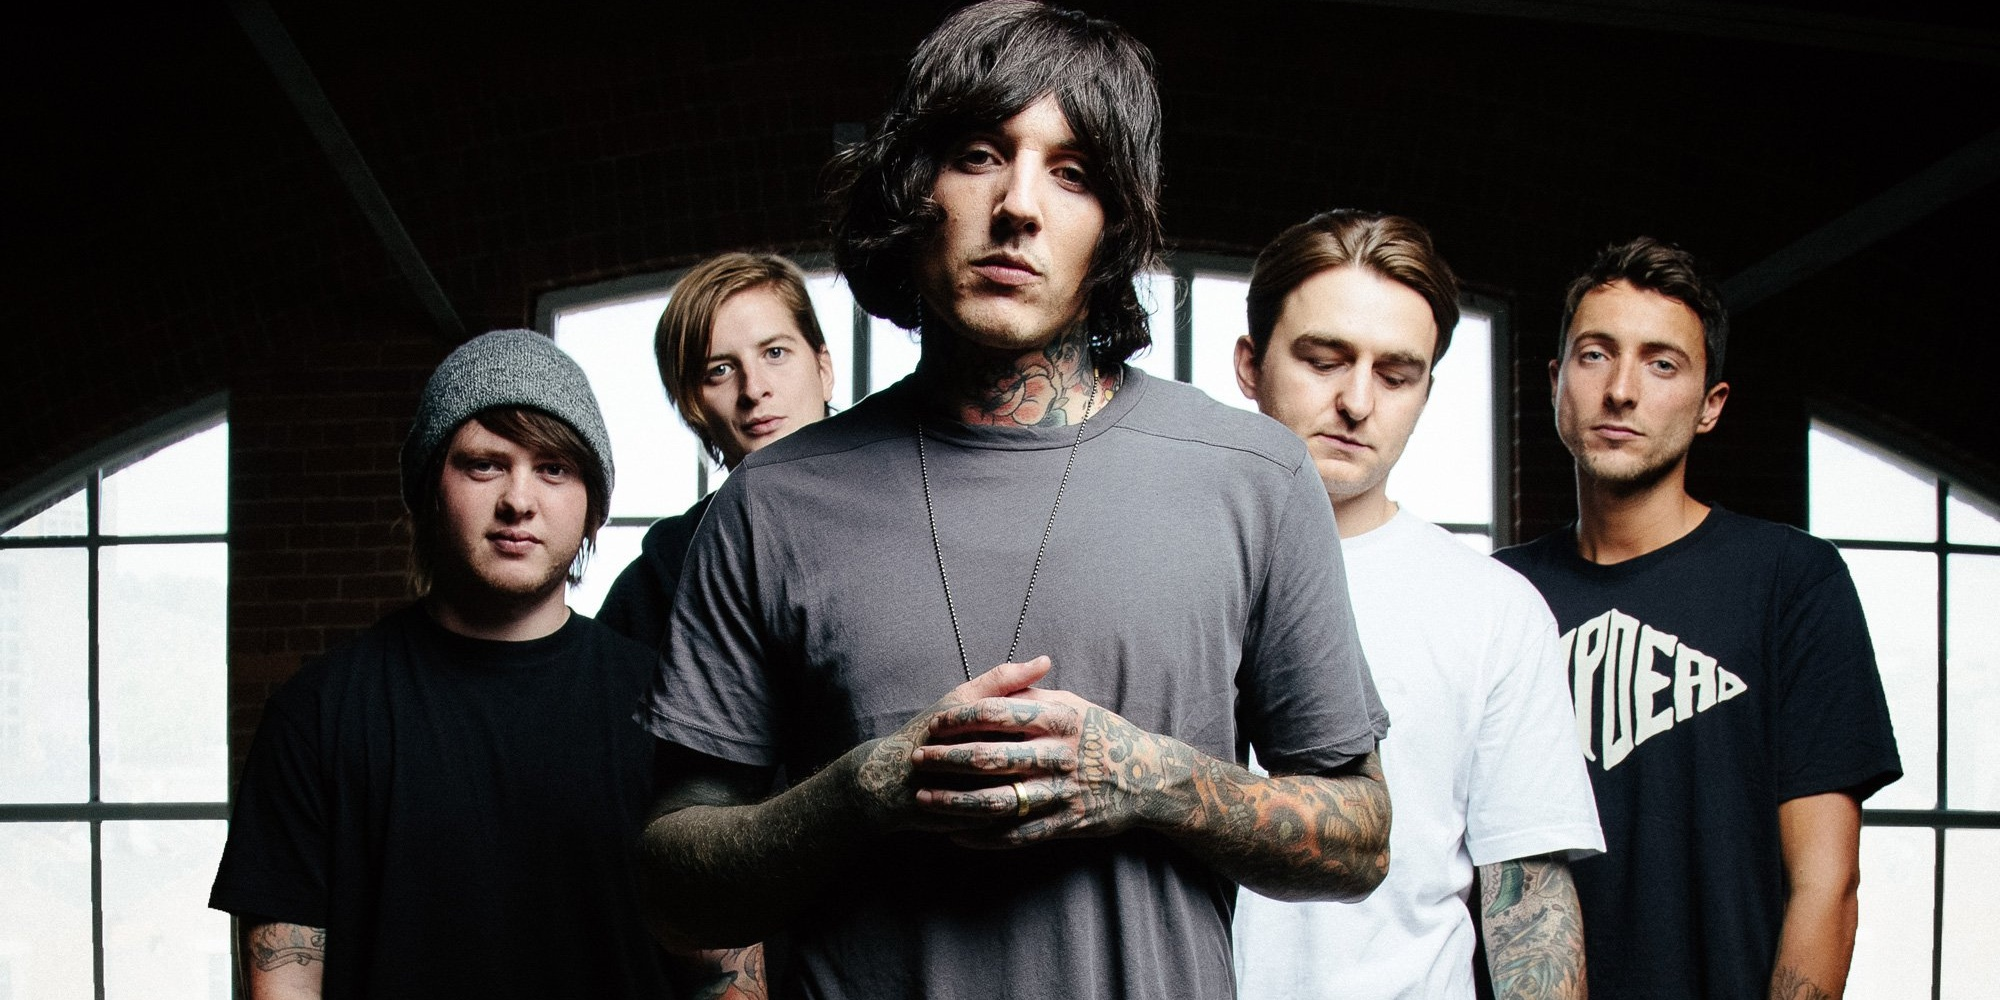 Bring Me the Horizon's Singapore show has been postponed